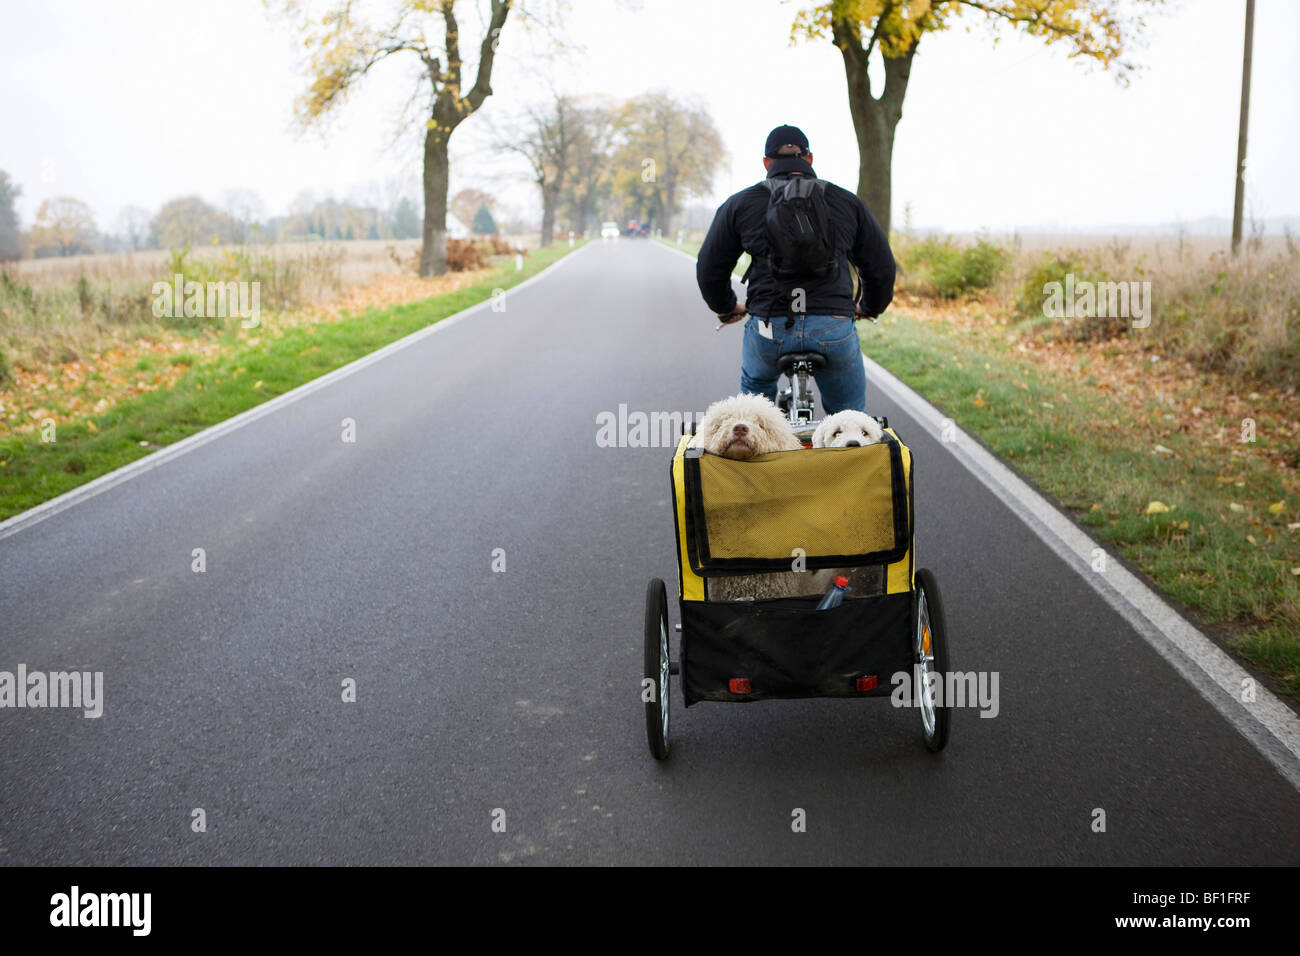 A man on a bike pulling a trailer with two dogs - Stock Image